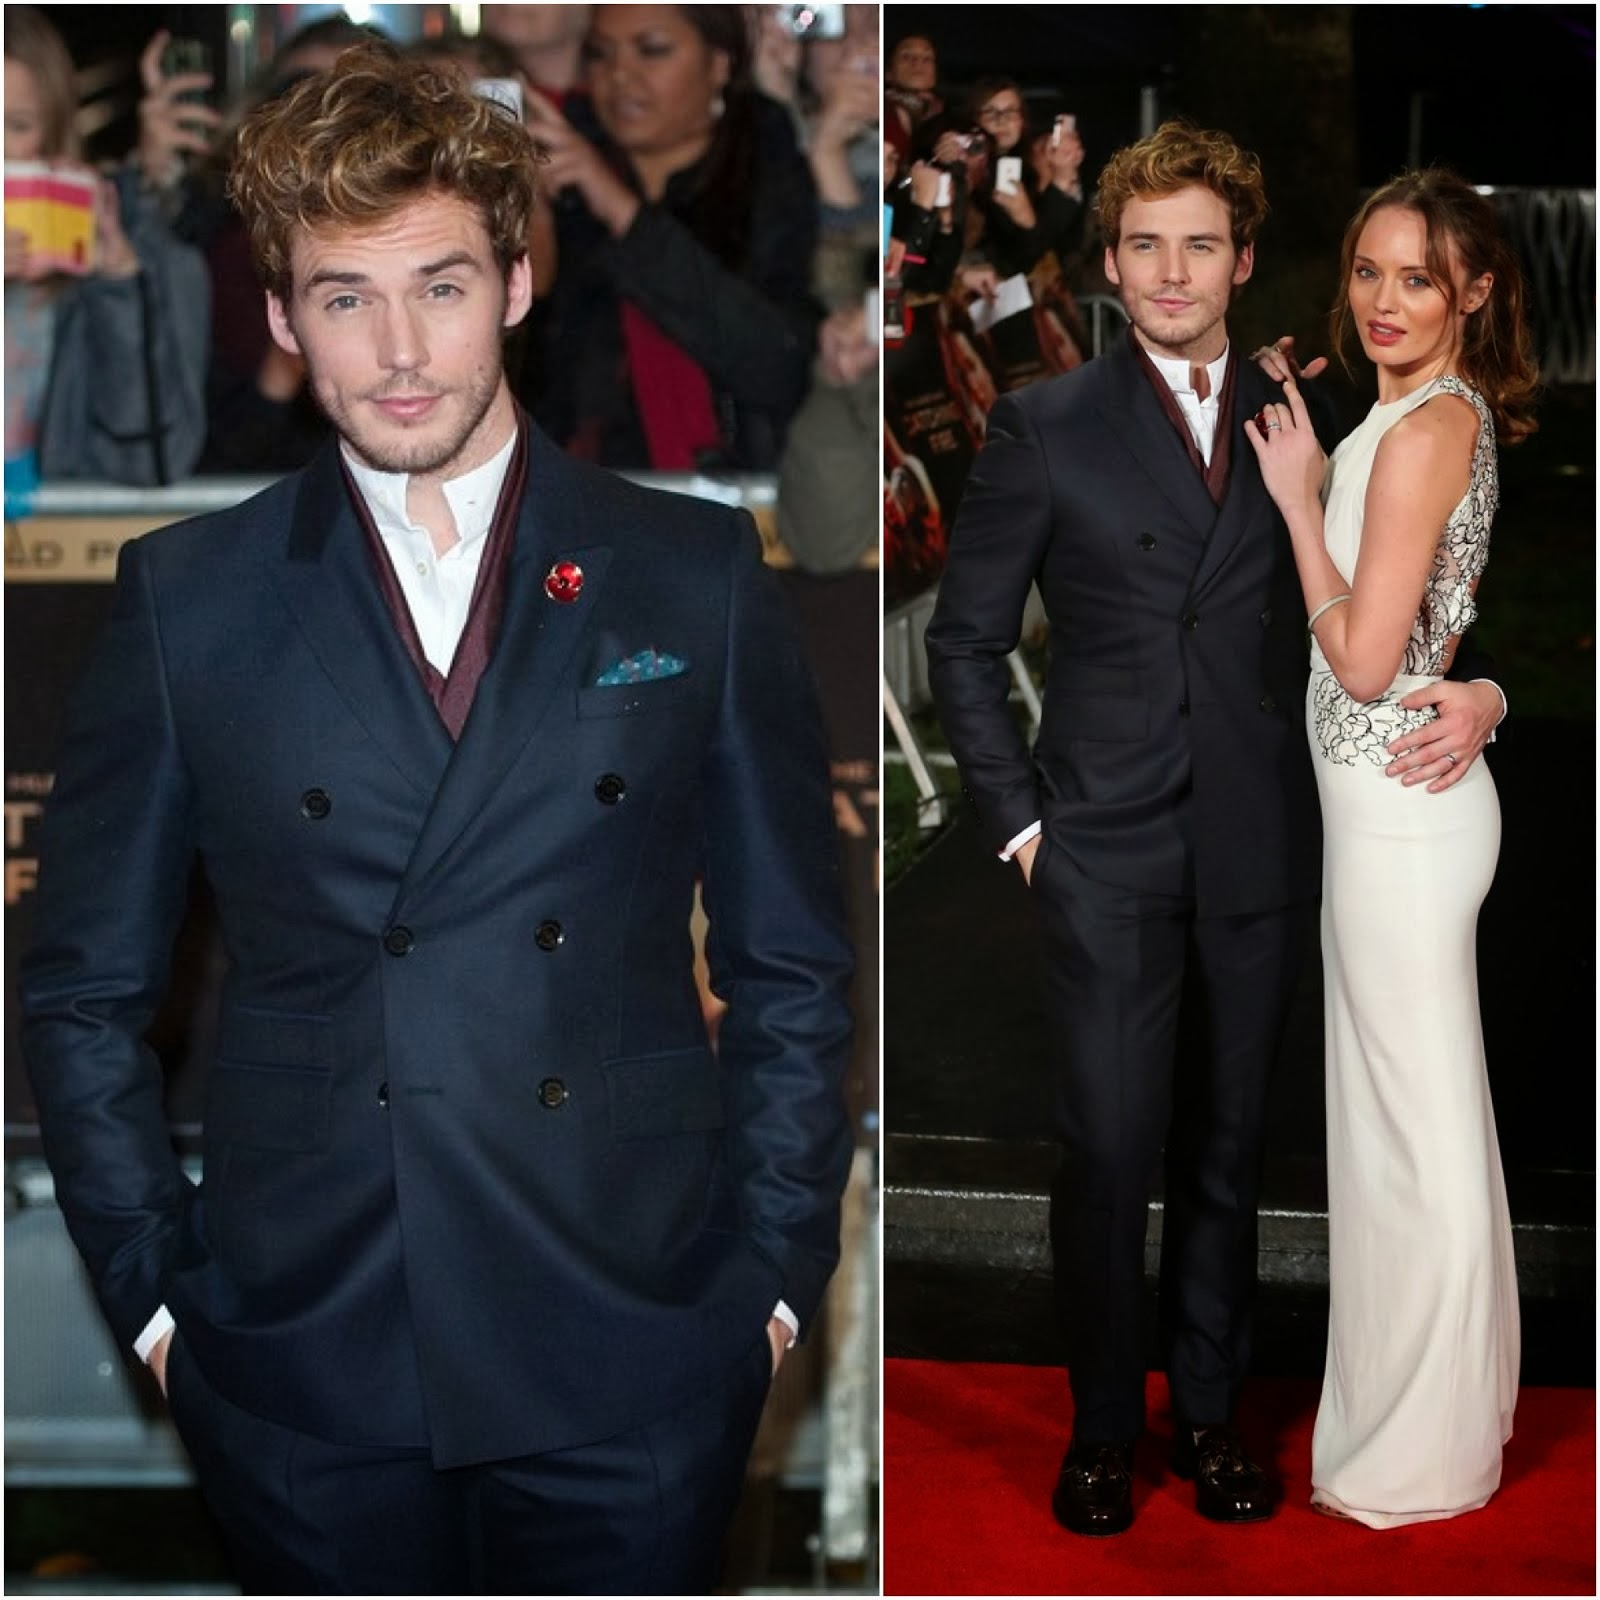 00O00 Menswear Blog: Sam Claflin in Burberry Tailoring - 'The Hunger Games: Catching Fire' London Premiere November 2013